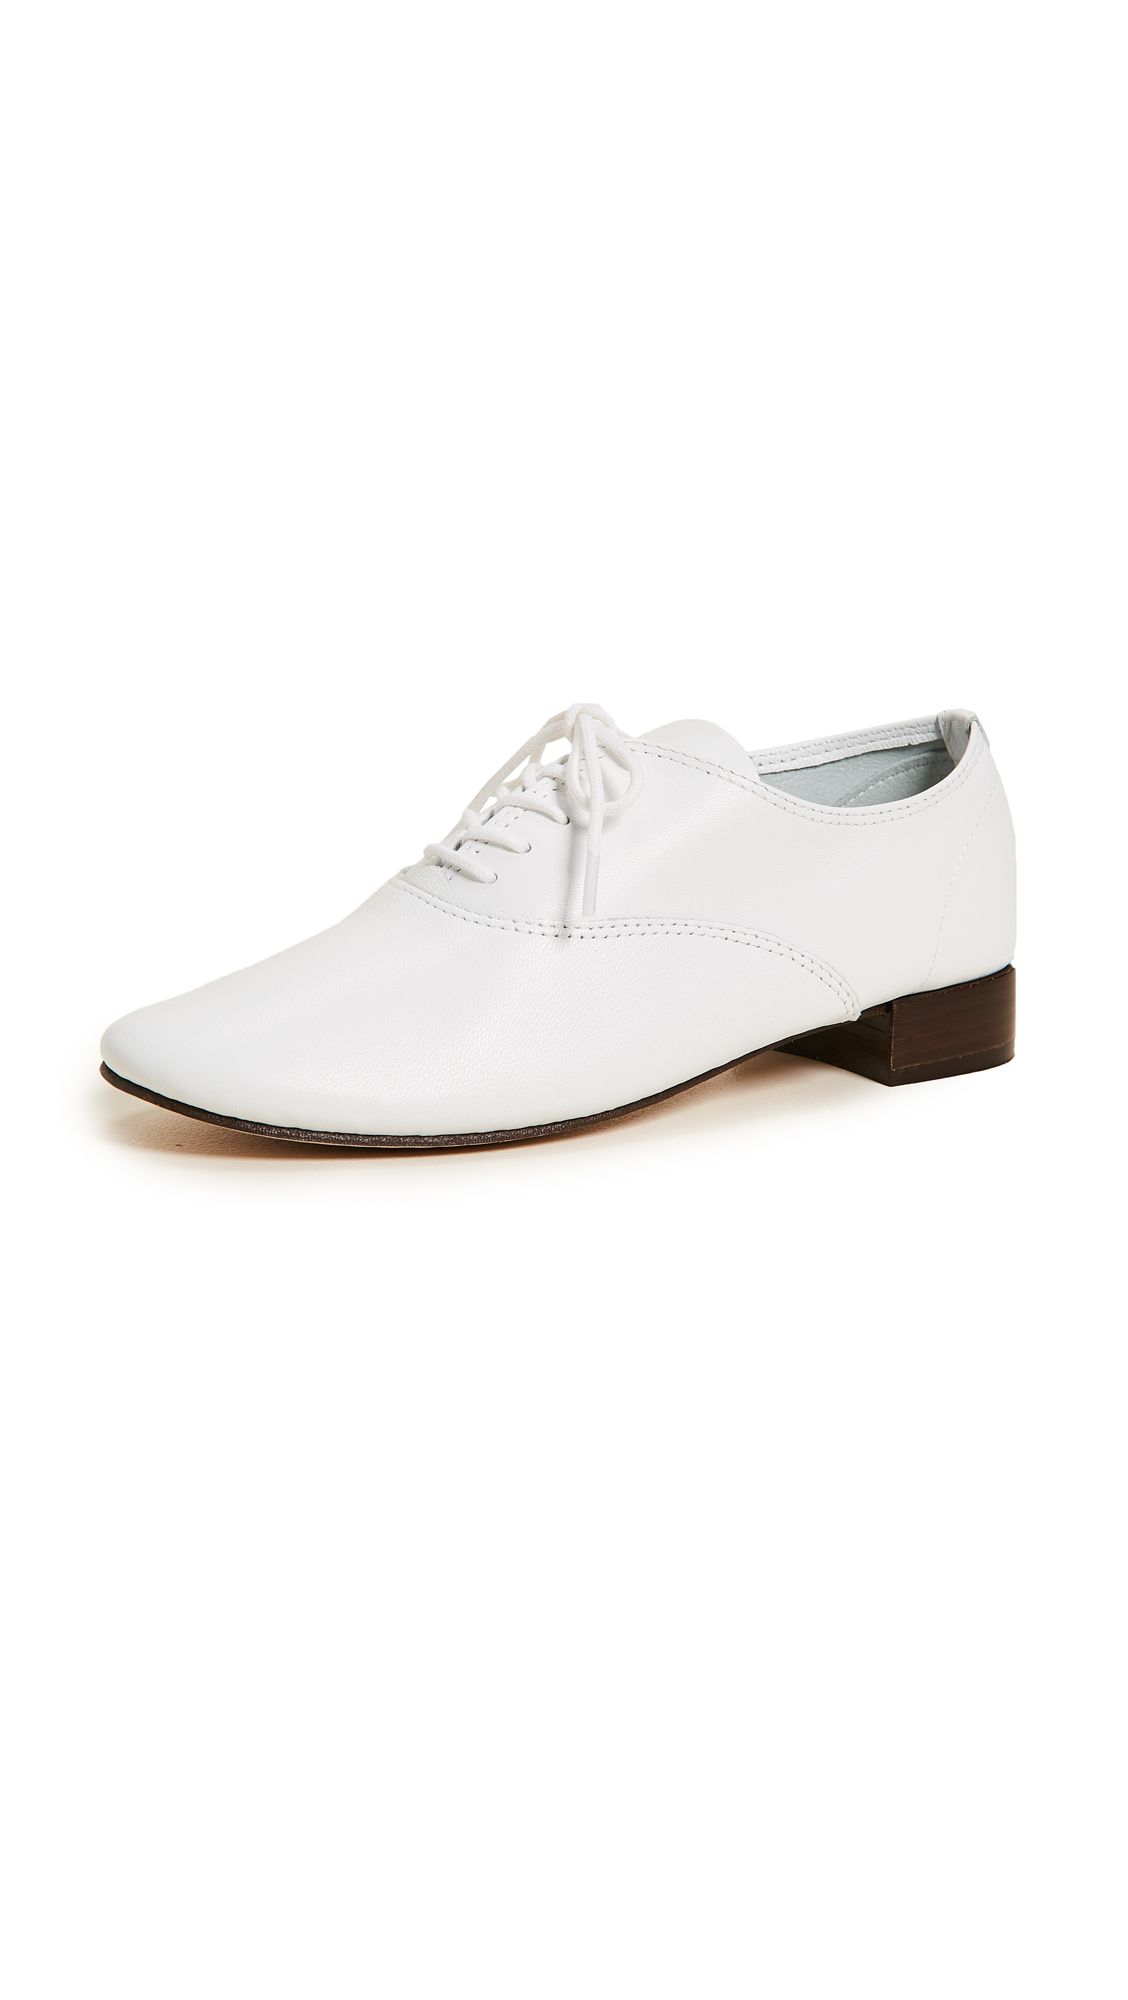 Repetto Zizi Oxfords - White